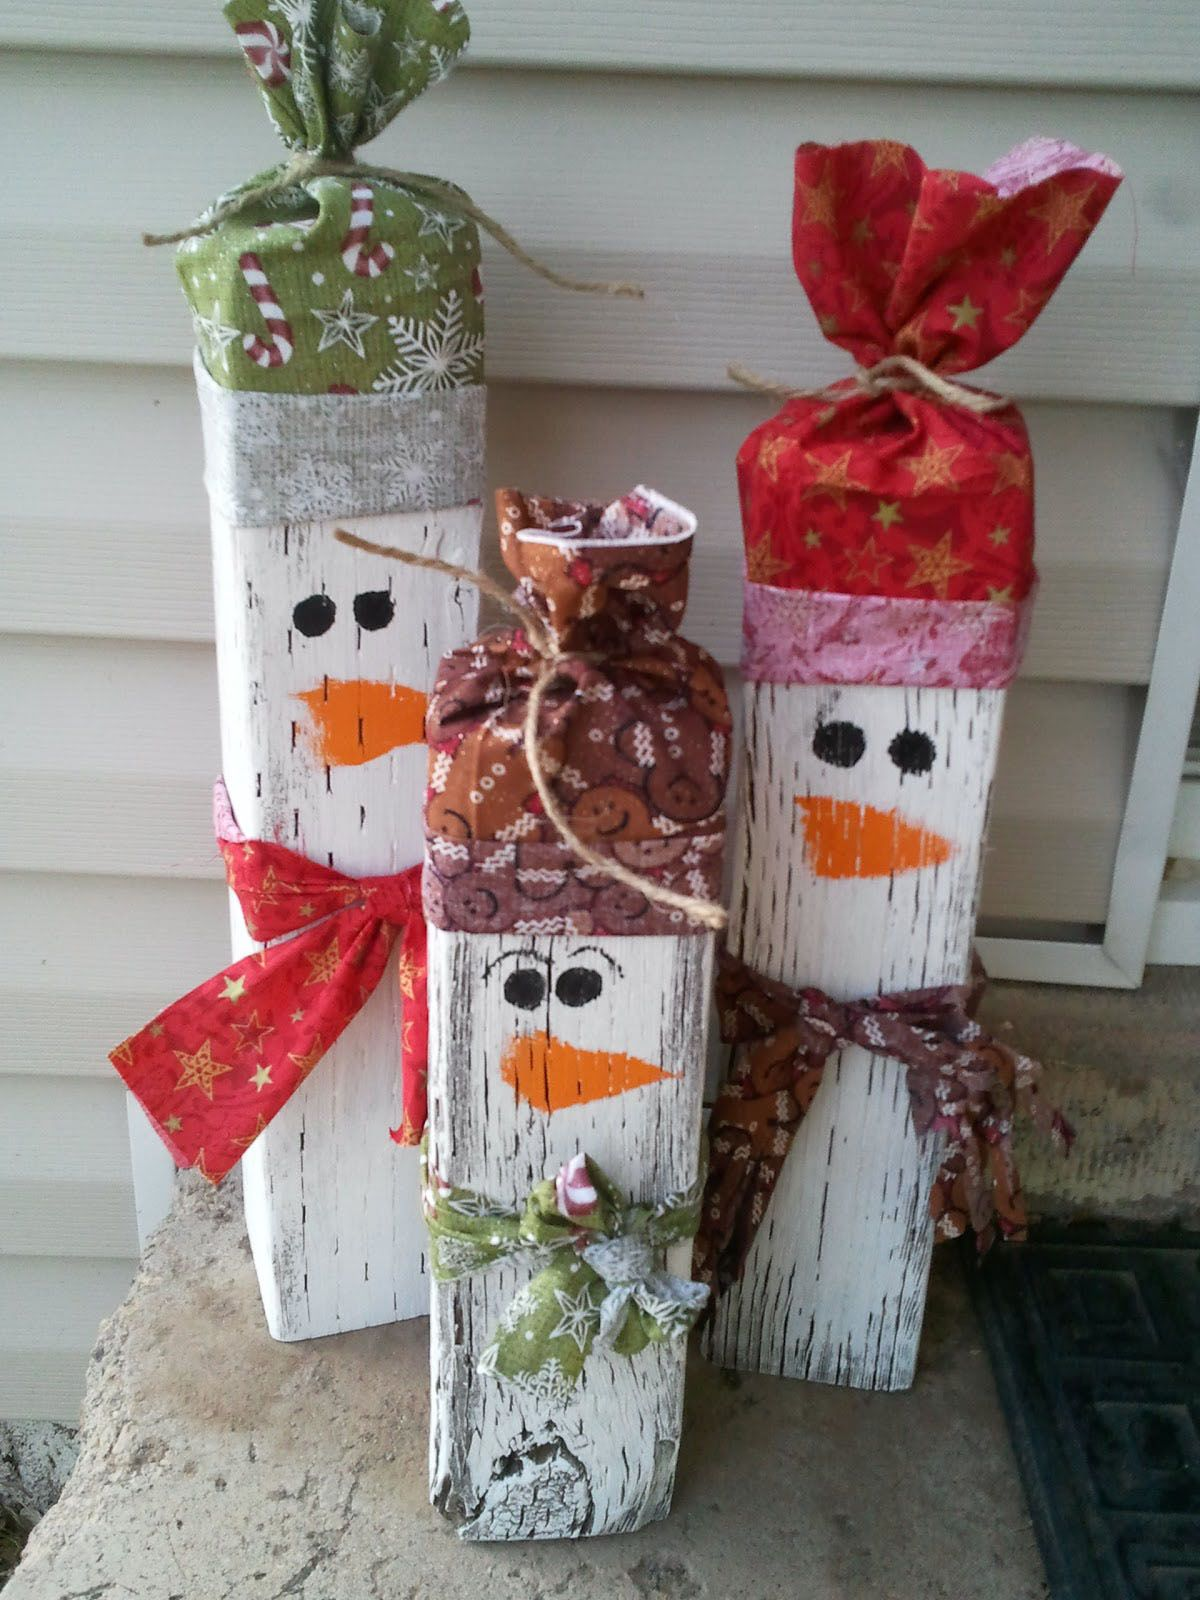 12 PinterestInspired Crafts to Make and Sell This Holiday